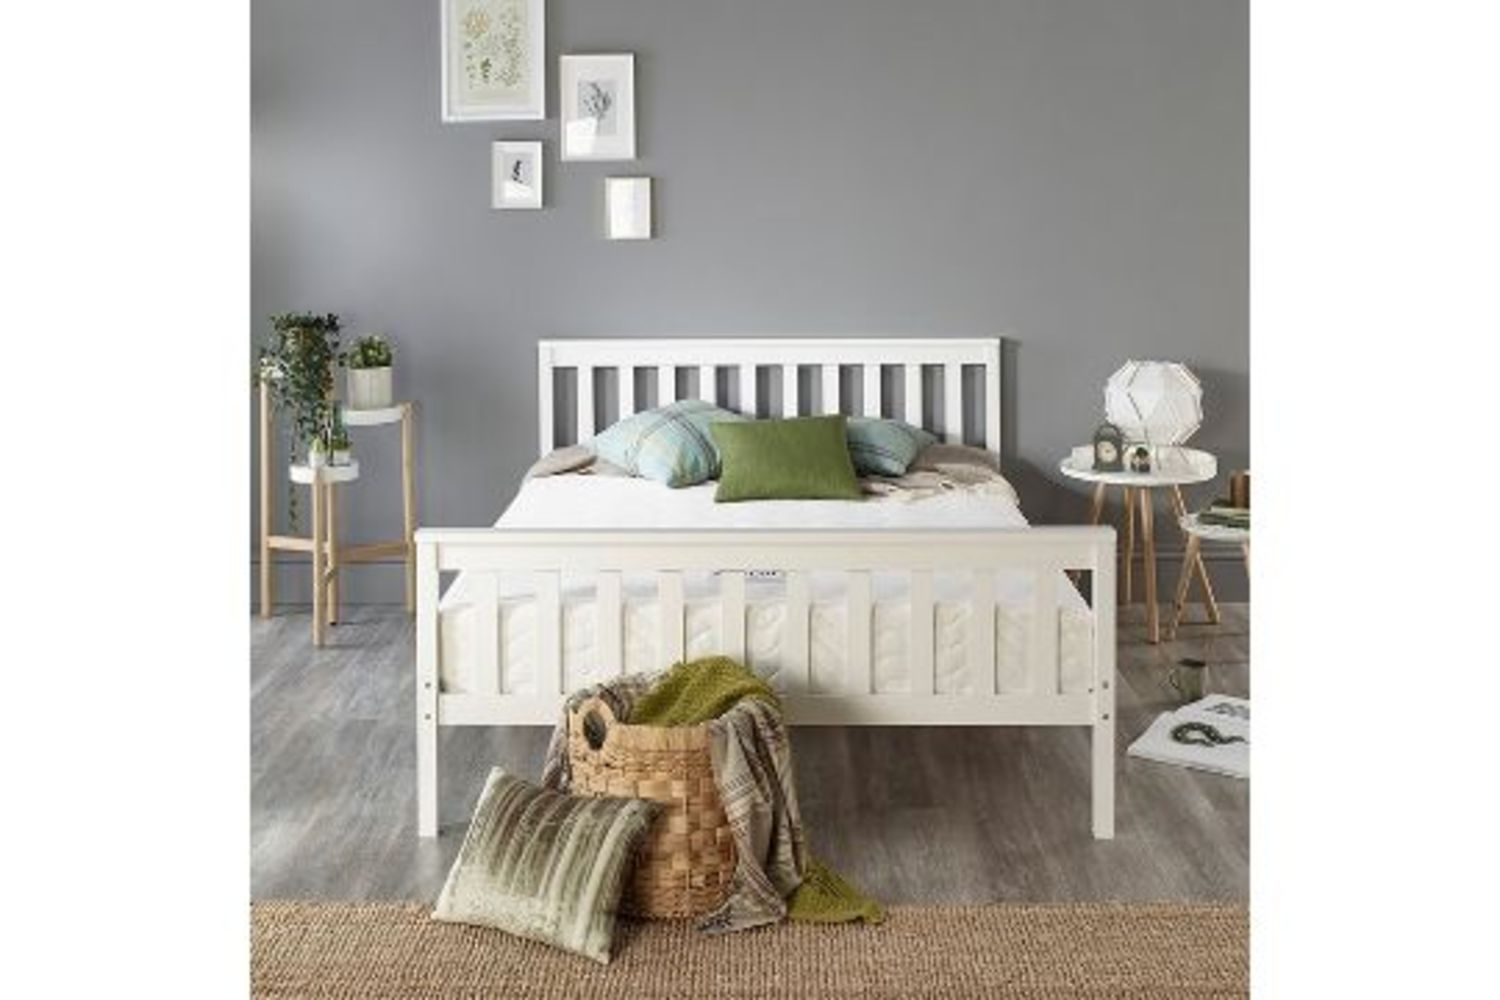 Wayfair Customer Returns and Cancelled Orders Includes Indoor & Outdoor Furniture, Sofas, Lighting, Electricals, Home Accessories, Kitchenware